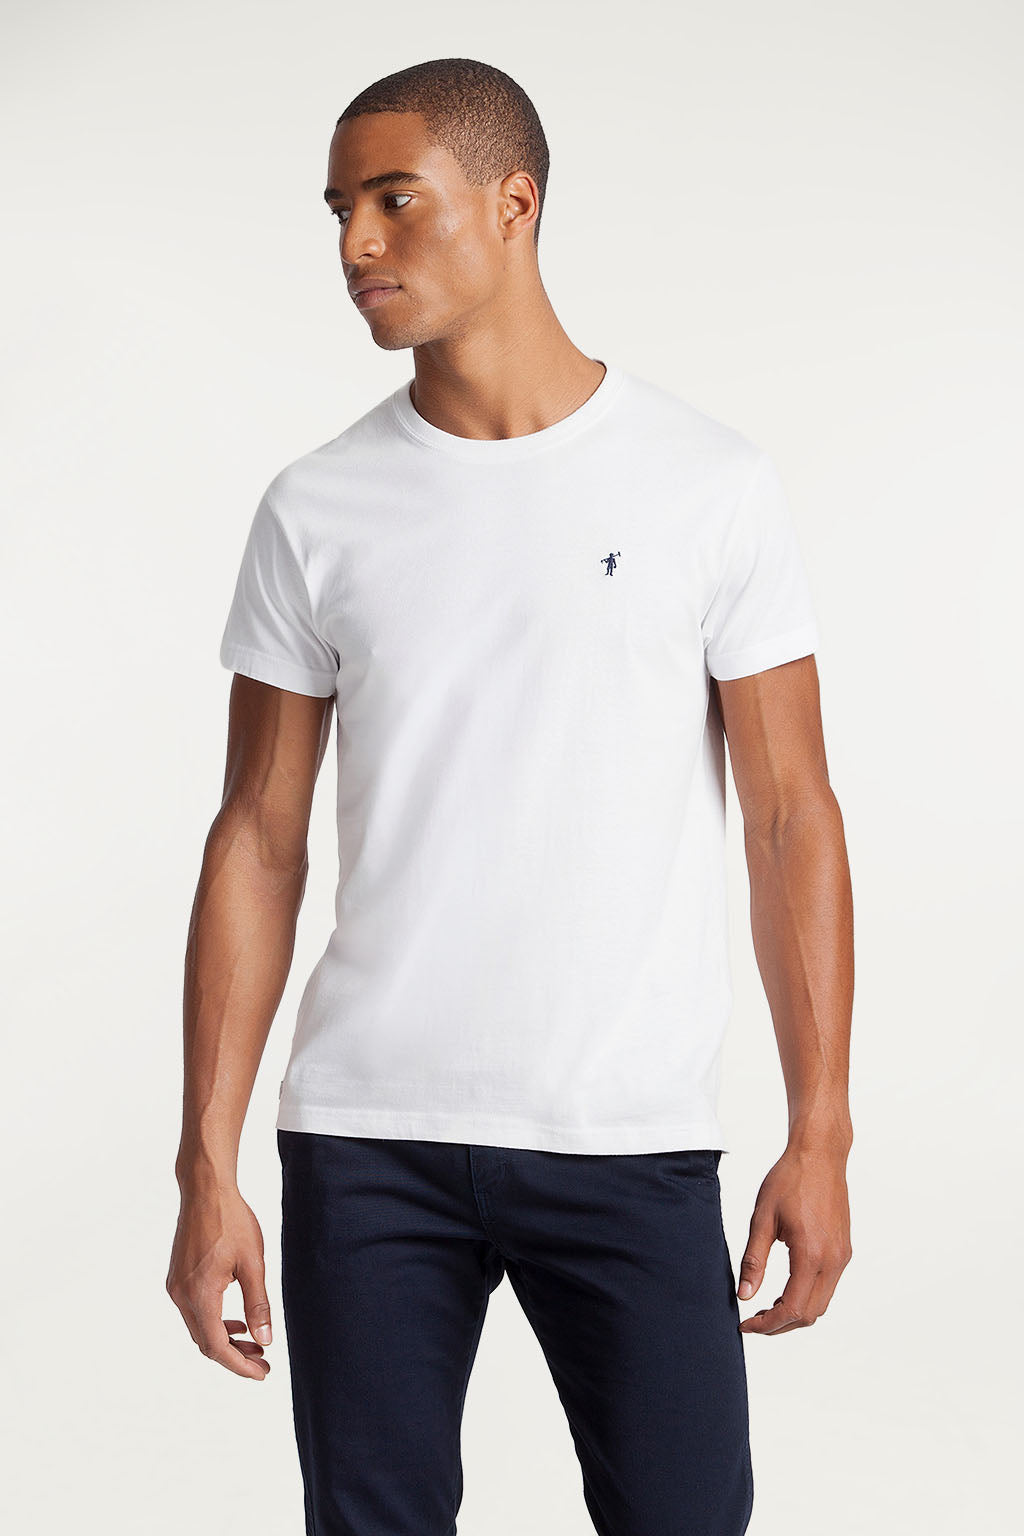 White cotton tee with embroidered logo